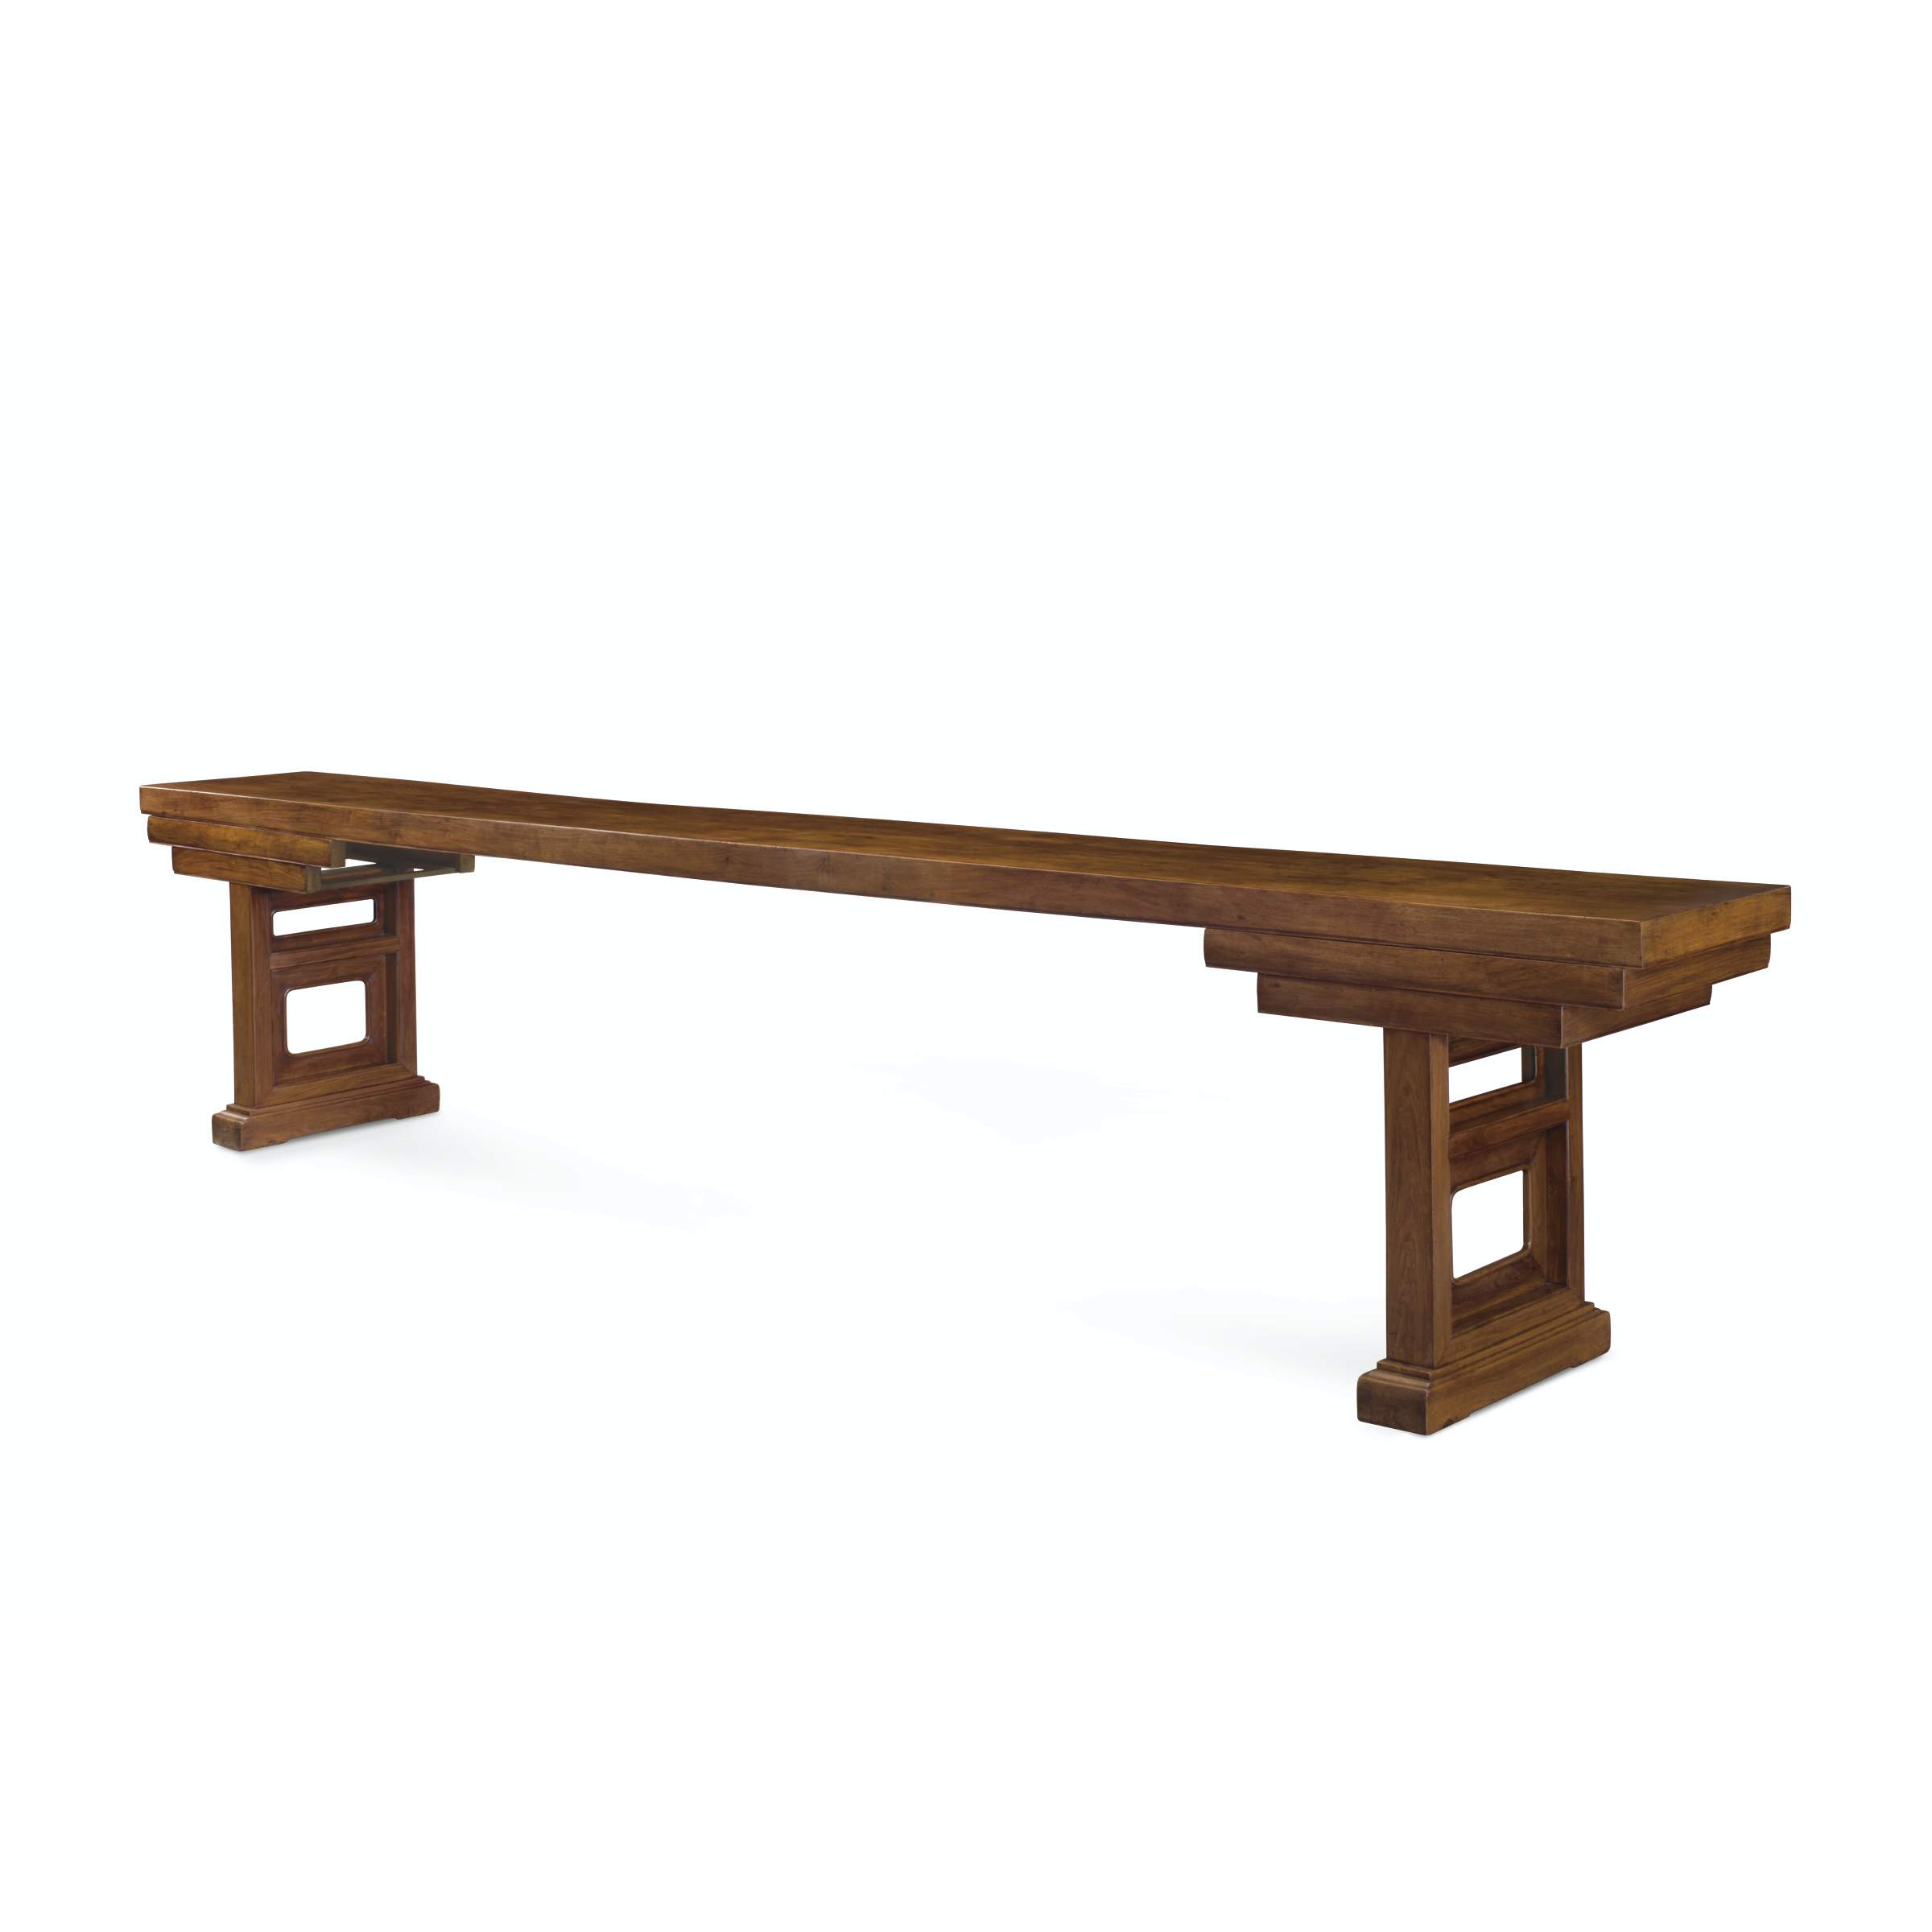 A MAGNIFICENT AND VERY RARE MASSIVE HUANGHUALI PLANK-TOP PEDESTAL TABLE, JIAJI'AN